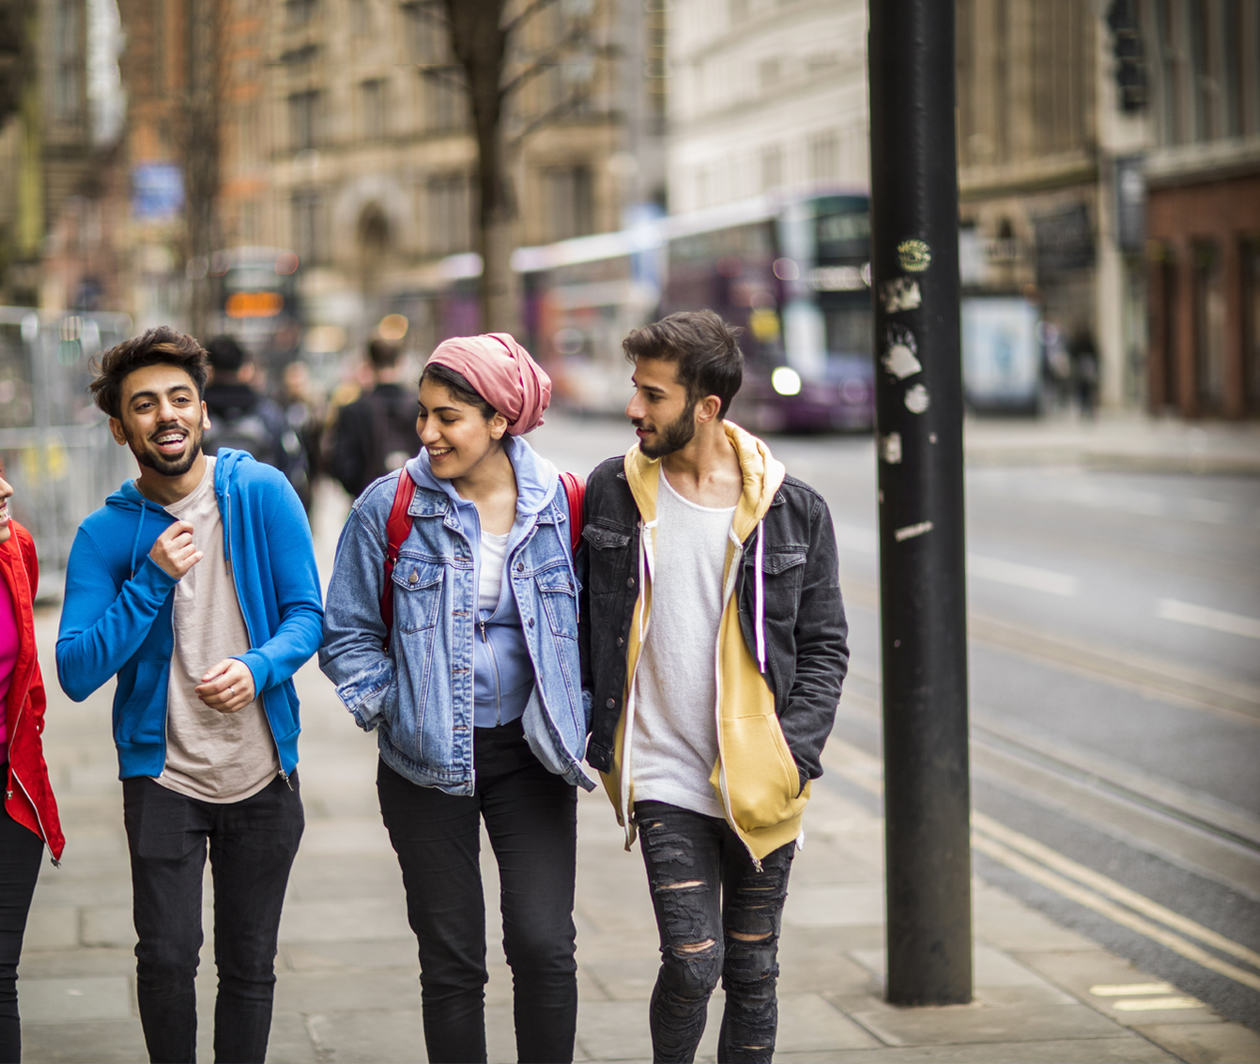 Study UK: Prepare to Study and Live in the UK